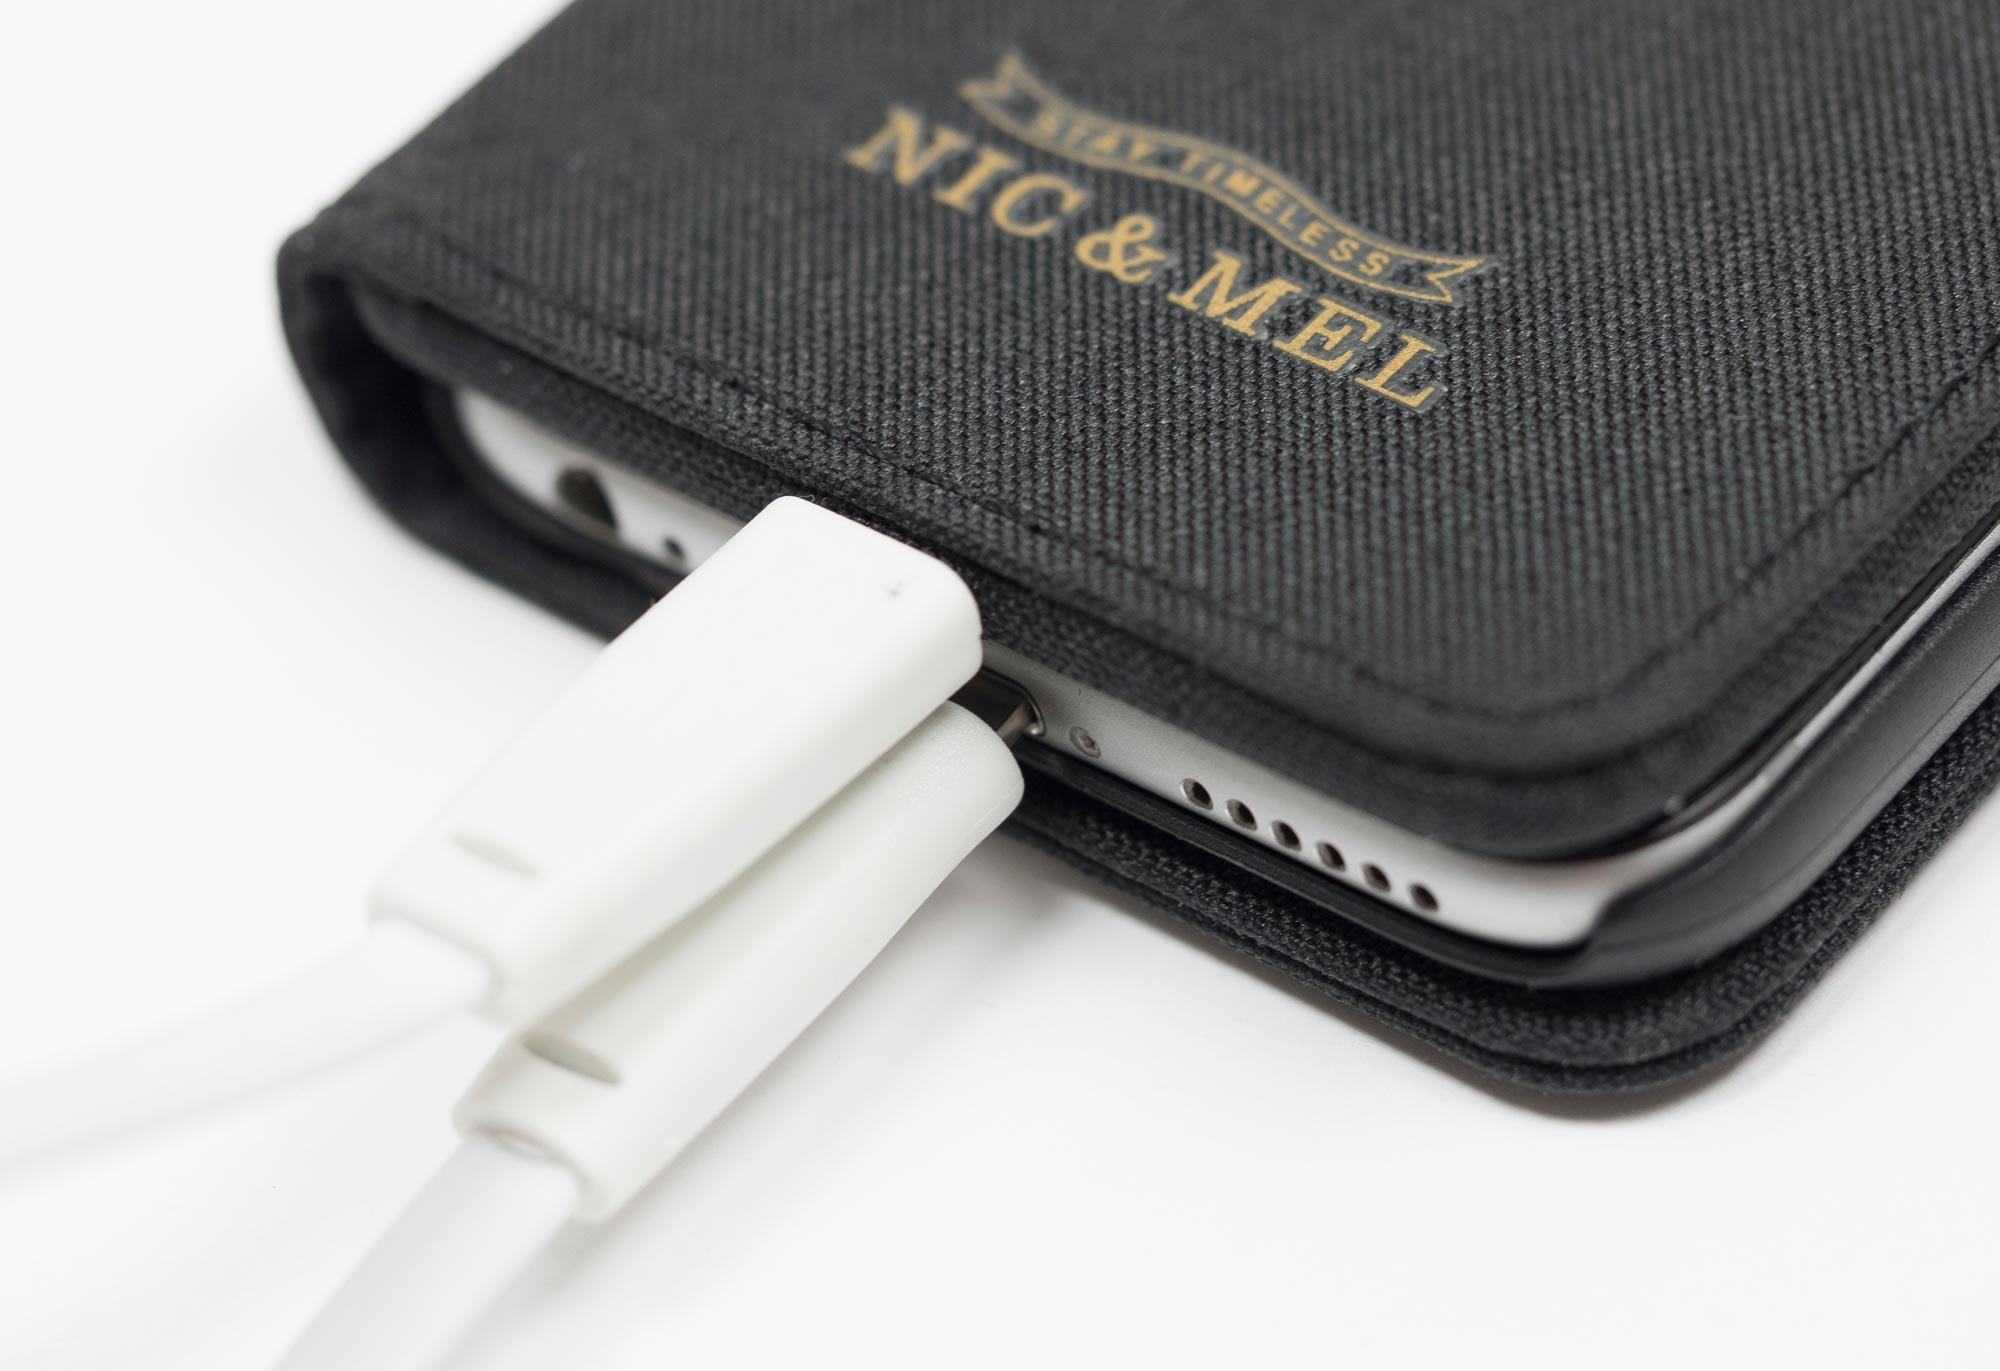 Charge your iPhone 7 with Neil-powerbank-antracite-closeup_2